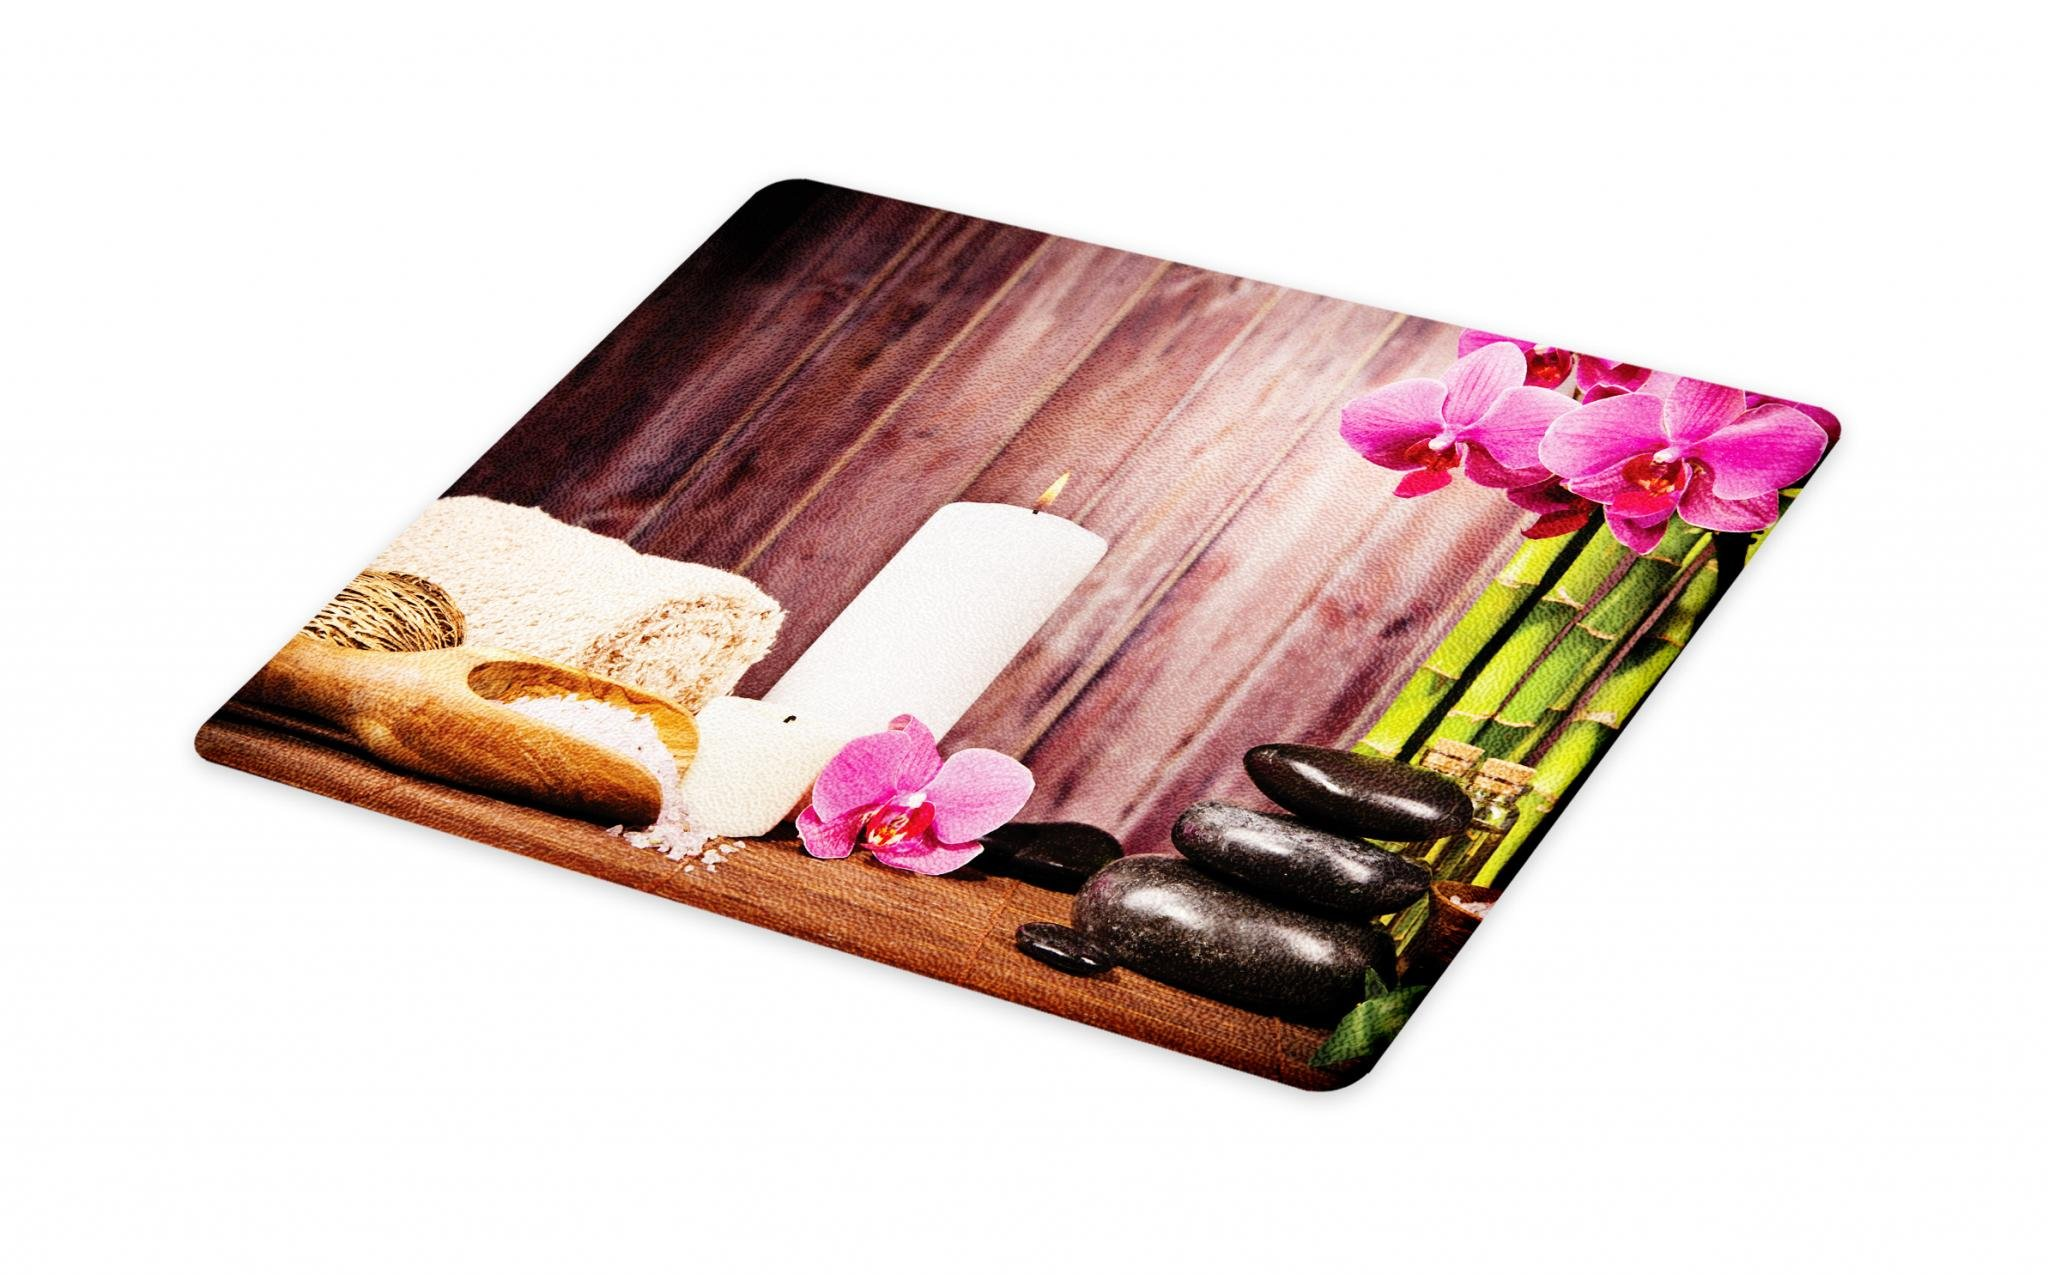 Lunarable Spa Cutting Board, Spa Candlelight Plants Wooden Wall Sea Salt Treatment Freshness Relaxing, Decorative Tempered Glass Cutting and Serving Board, Small Size, Green Pink Umber White